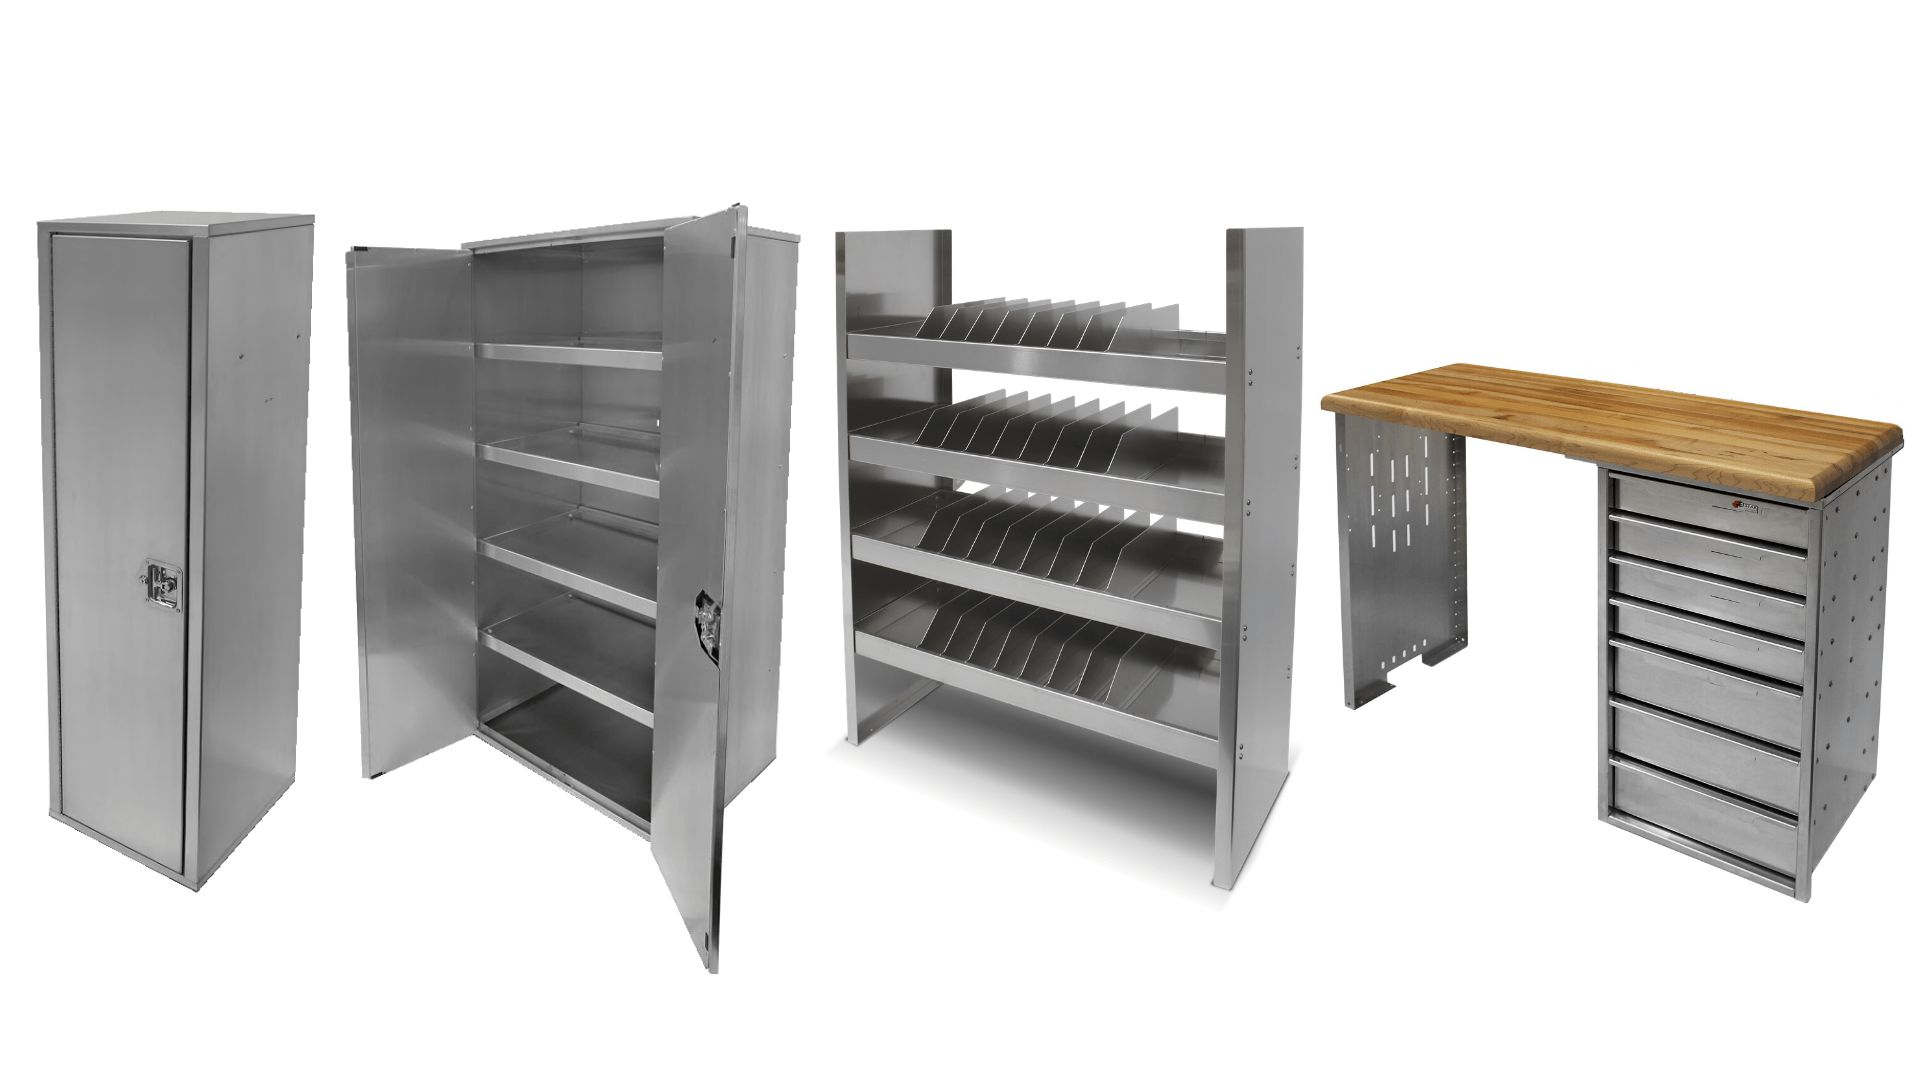 EZ STAK Aluminum Cabinets for Trailers